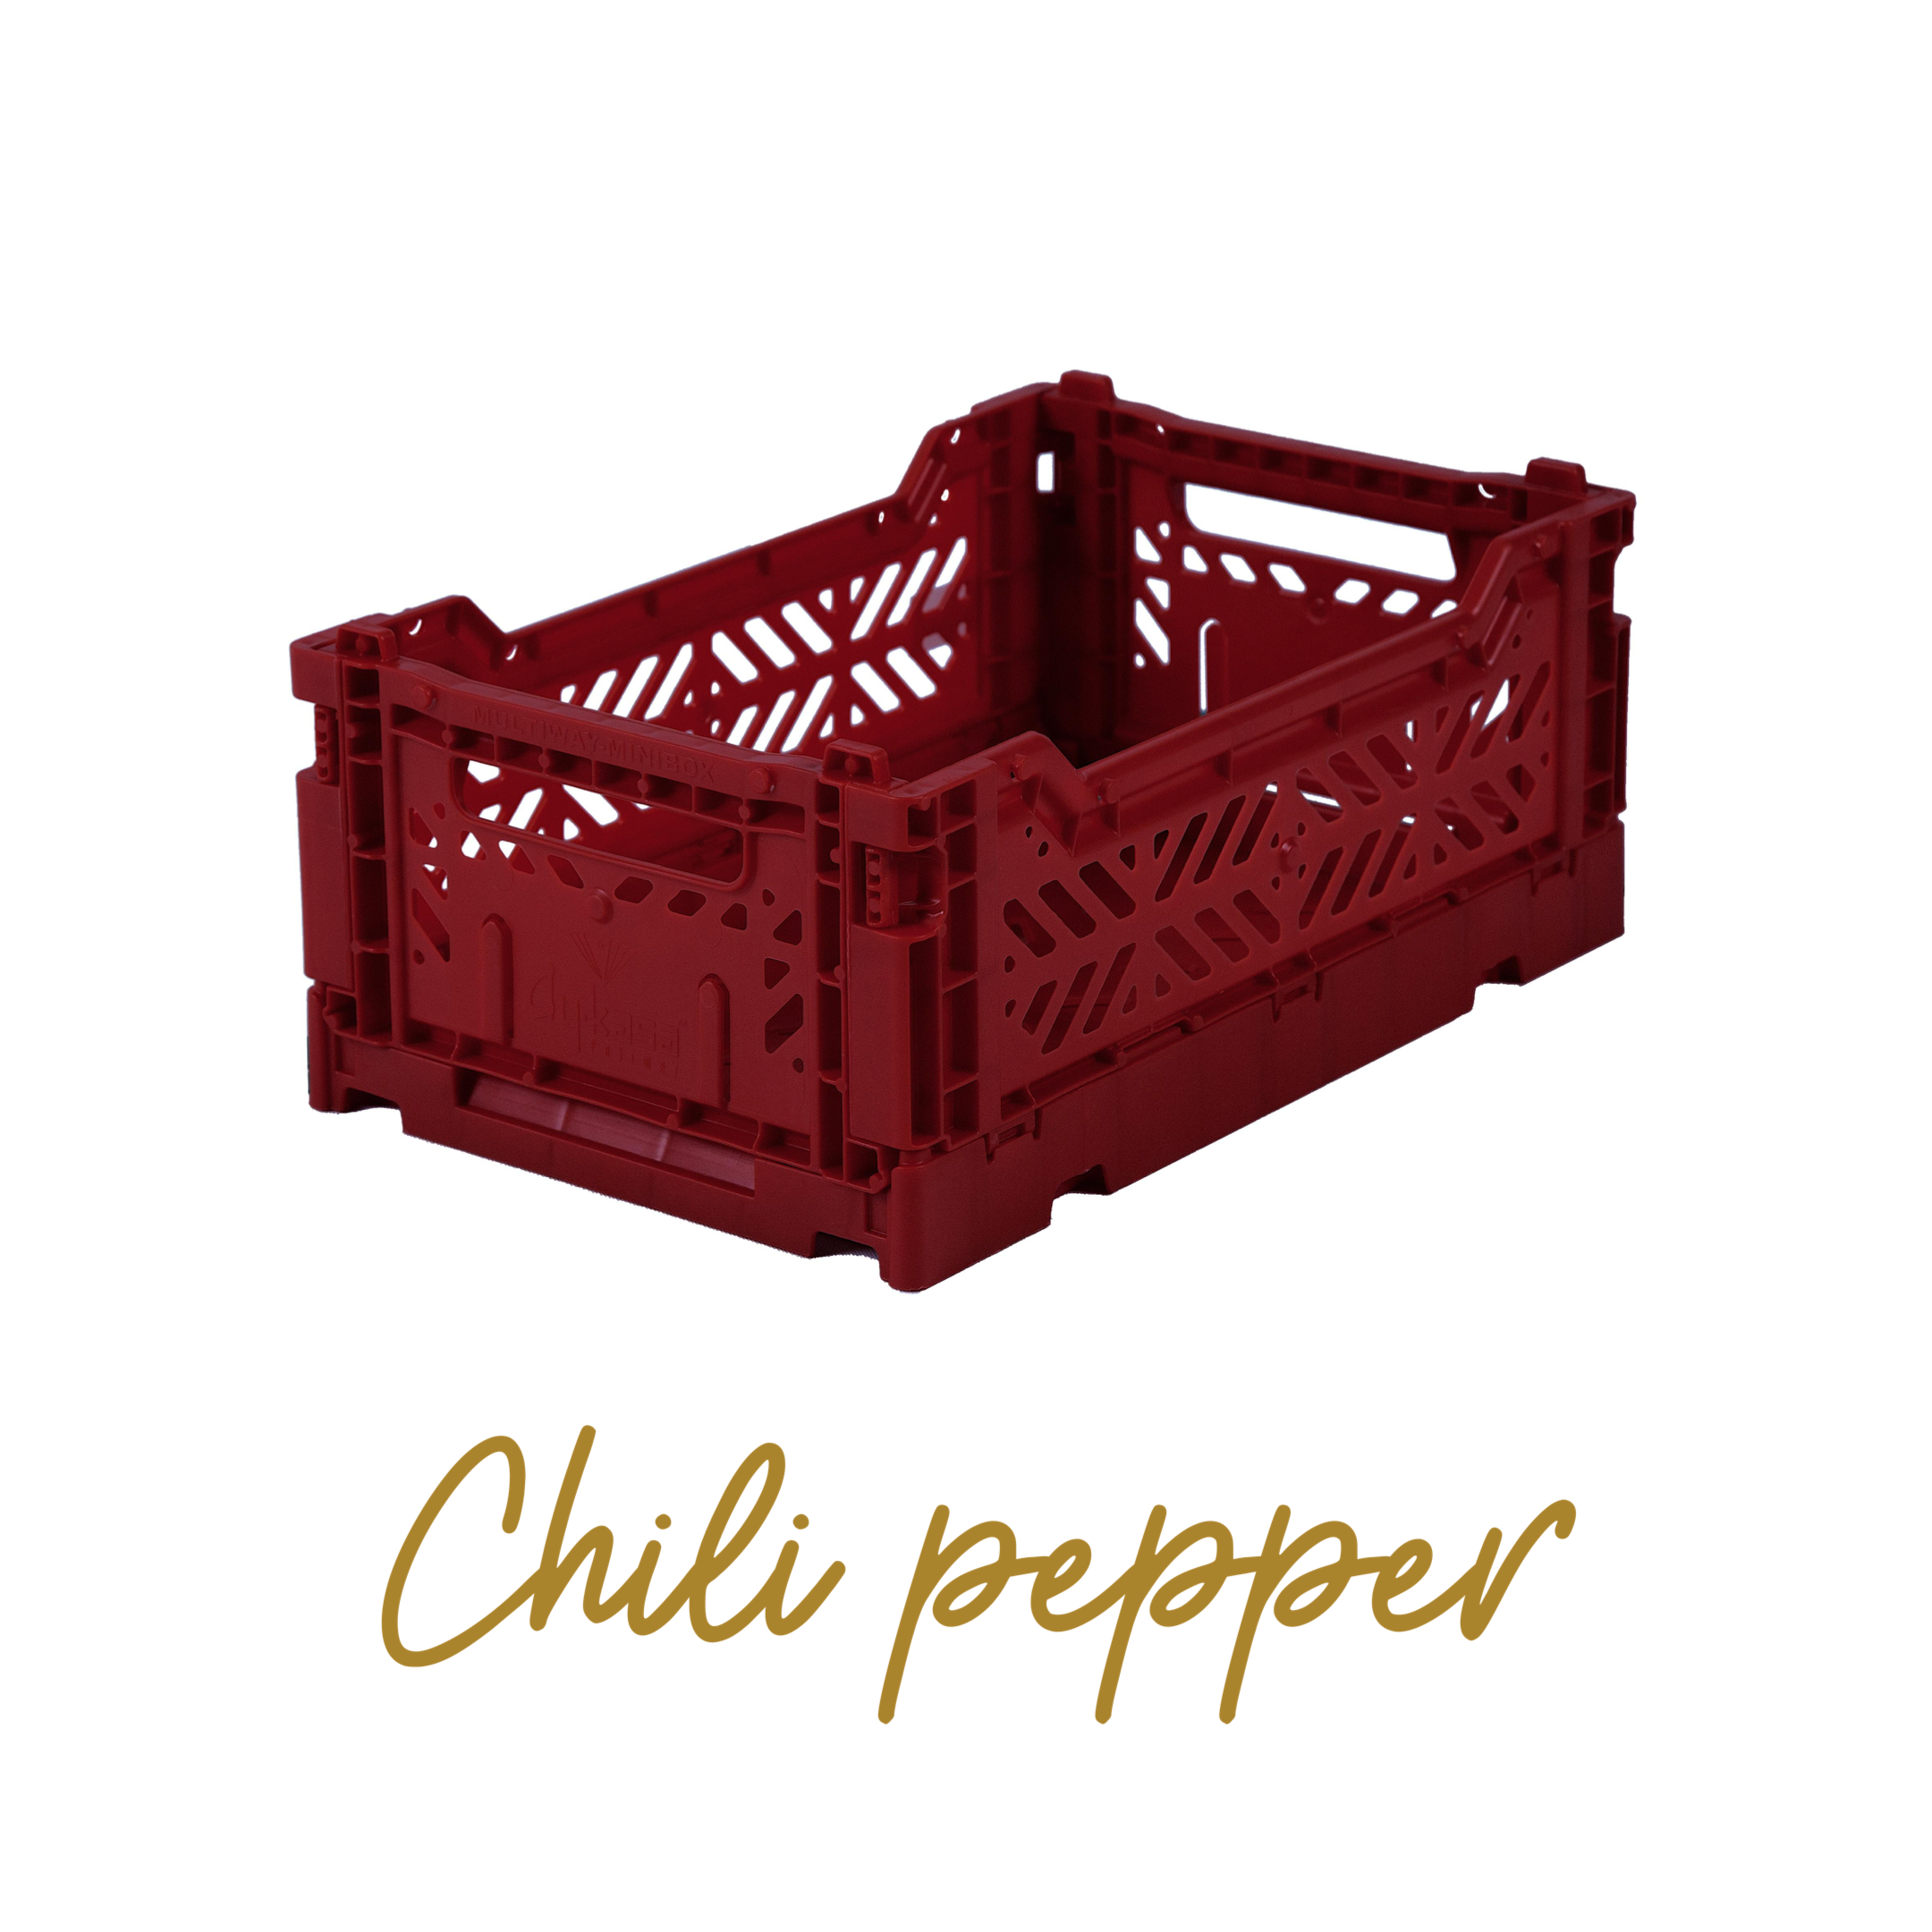 AYKASA Coloured Storage Crates - MINI - Chili Pepper